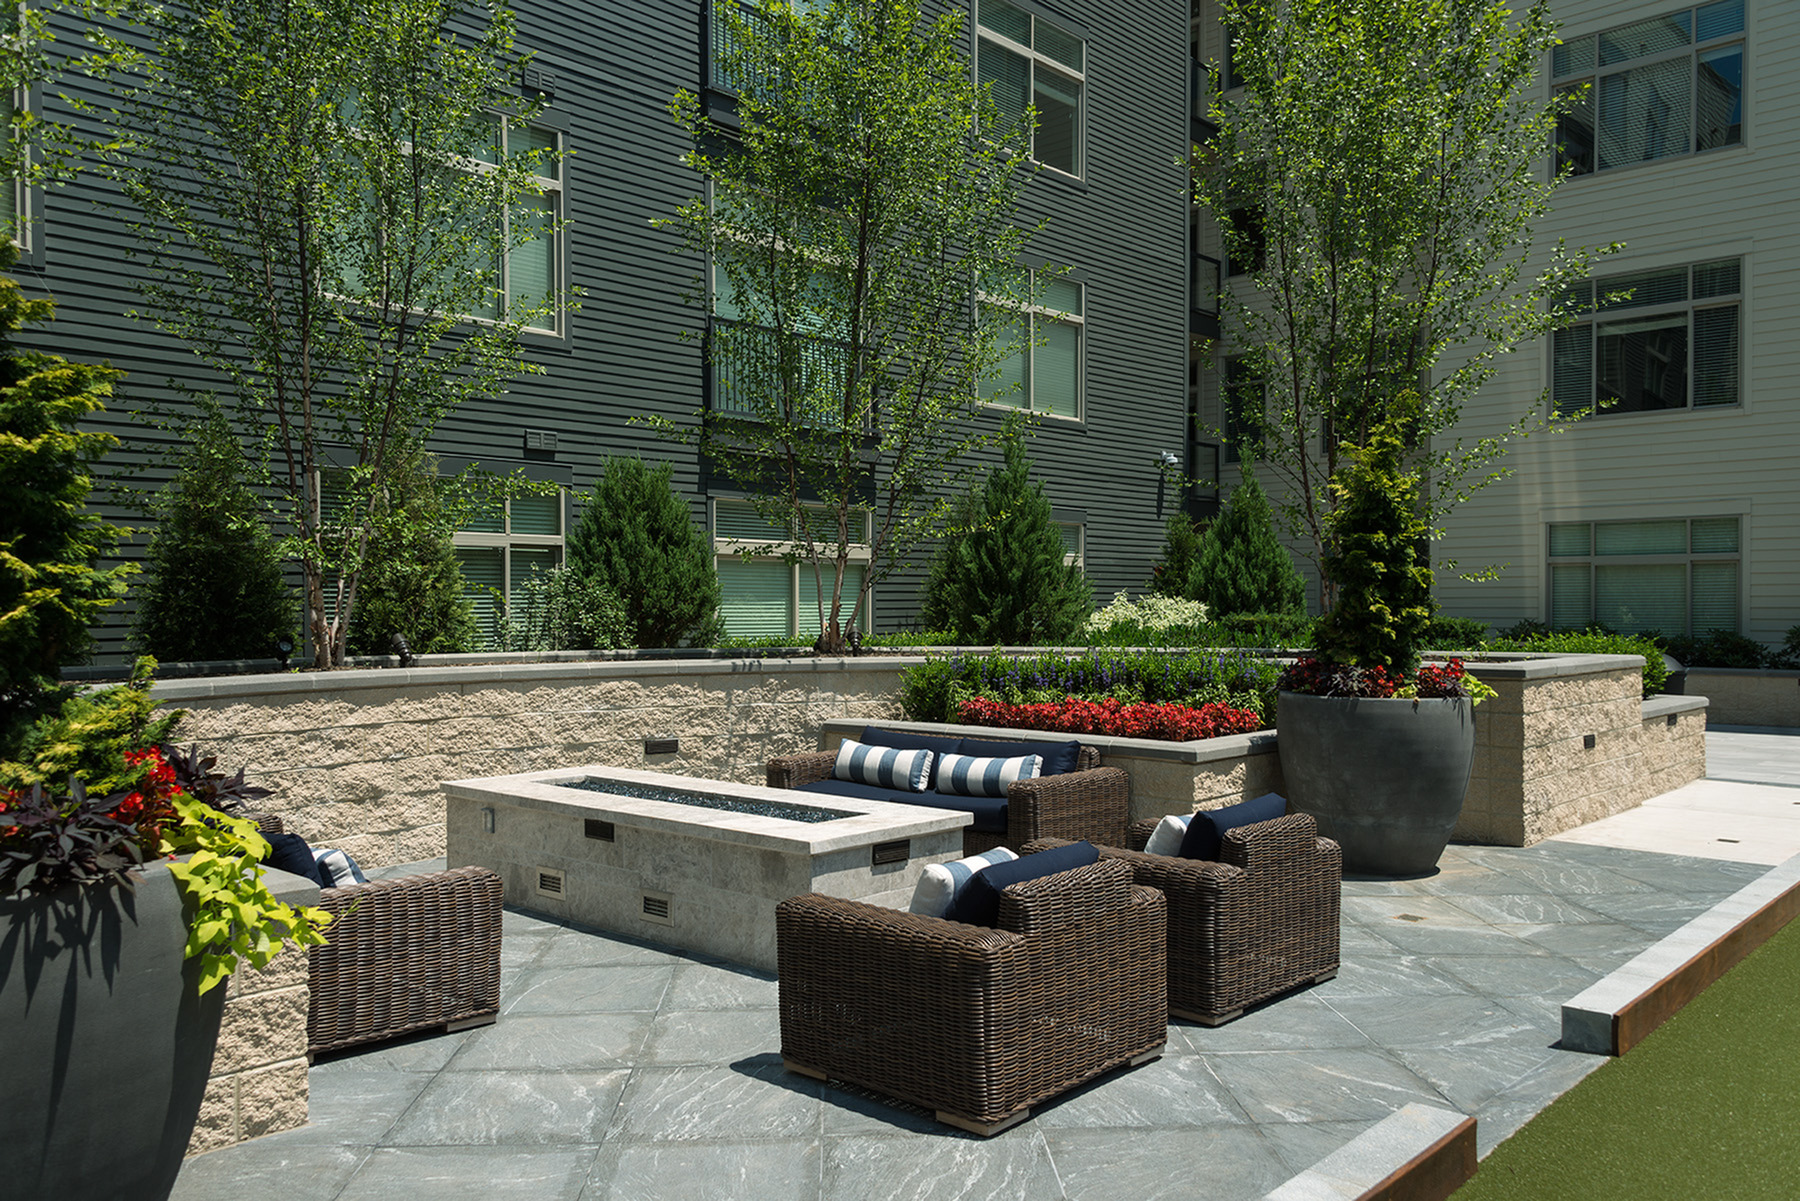 Image of Two landscaped courtyards with dining and grilling stations for Hanover North Broad